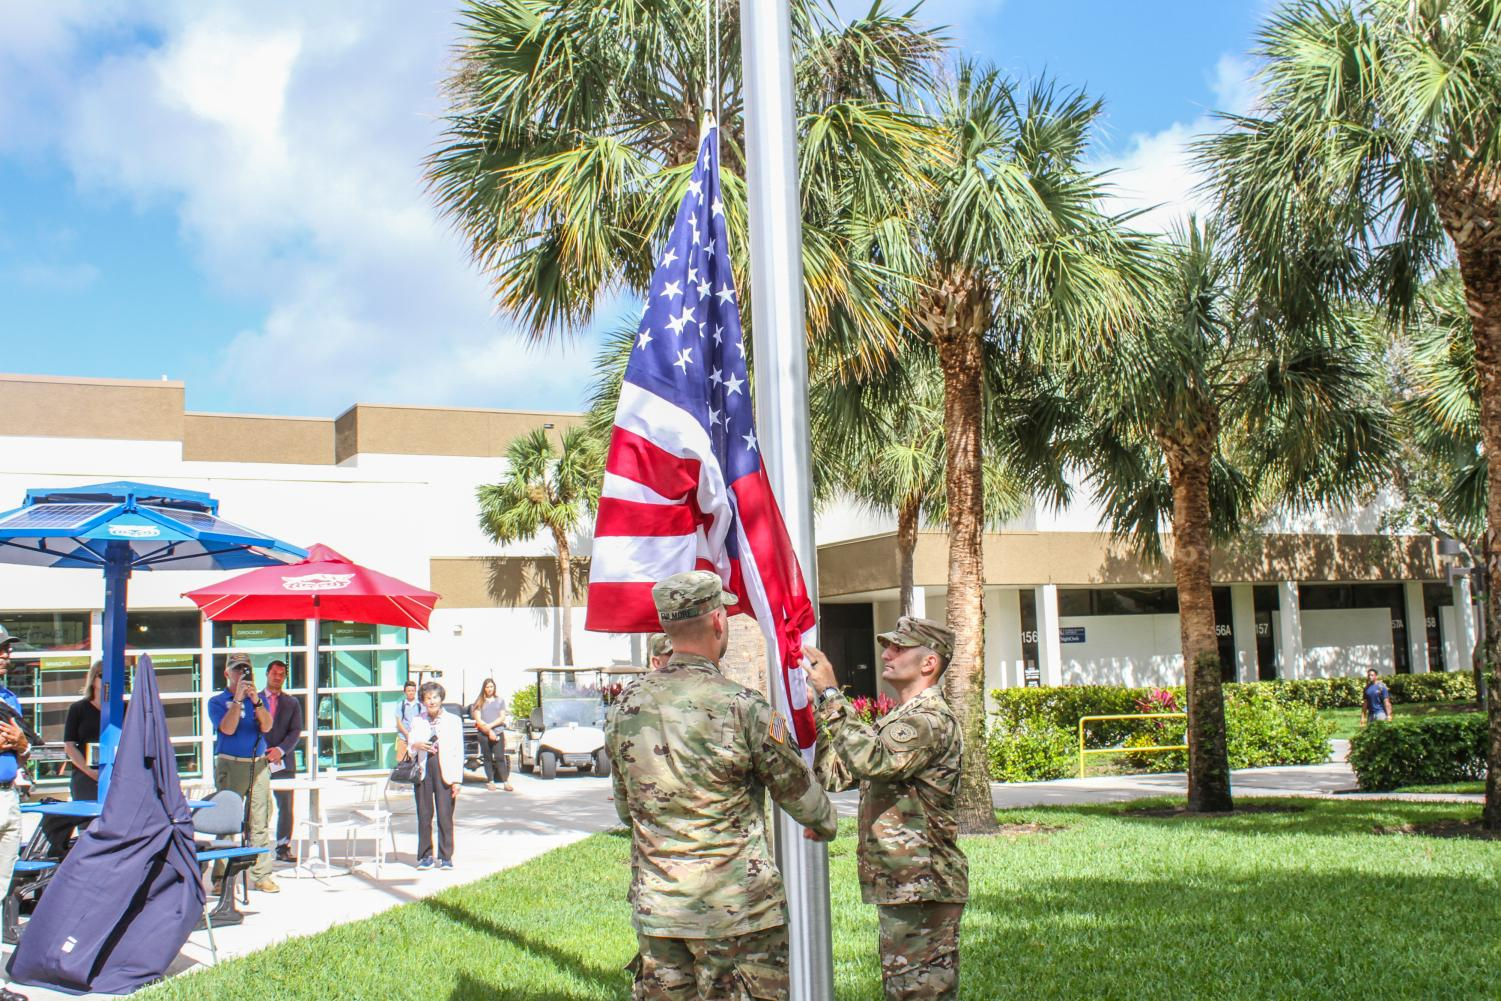 US Army Soldier Ronald Fulmore (left) and US Army Soldier Paul Roderick (right) help set up the US flag and raise the flag during the Florida Atlantic University Veterans' Flagpole Ceremony on Tuesday afternoon. Alexander Rodriguez   Photo Editor